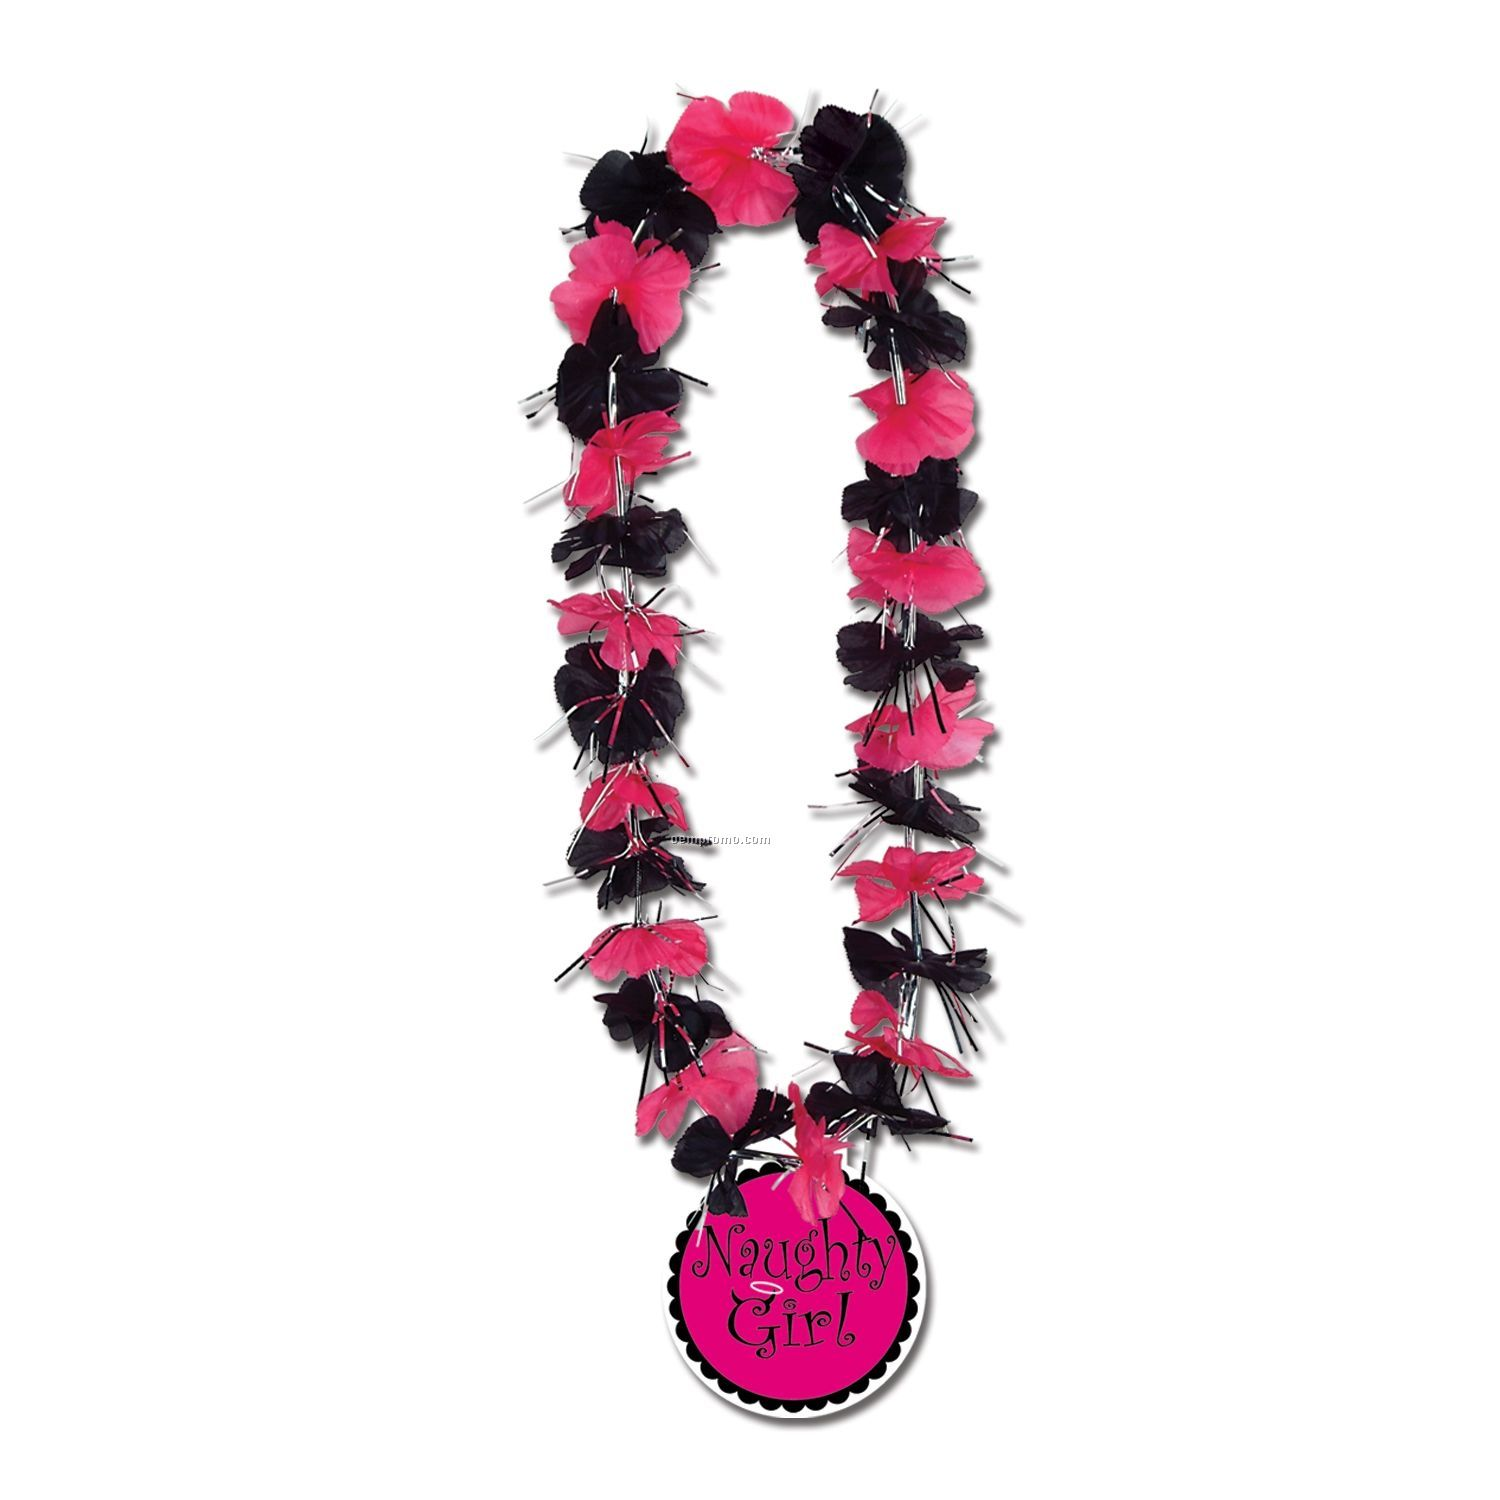 Party Leis W/ Naughty Girl Medallion